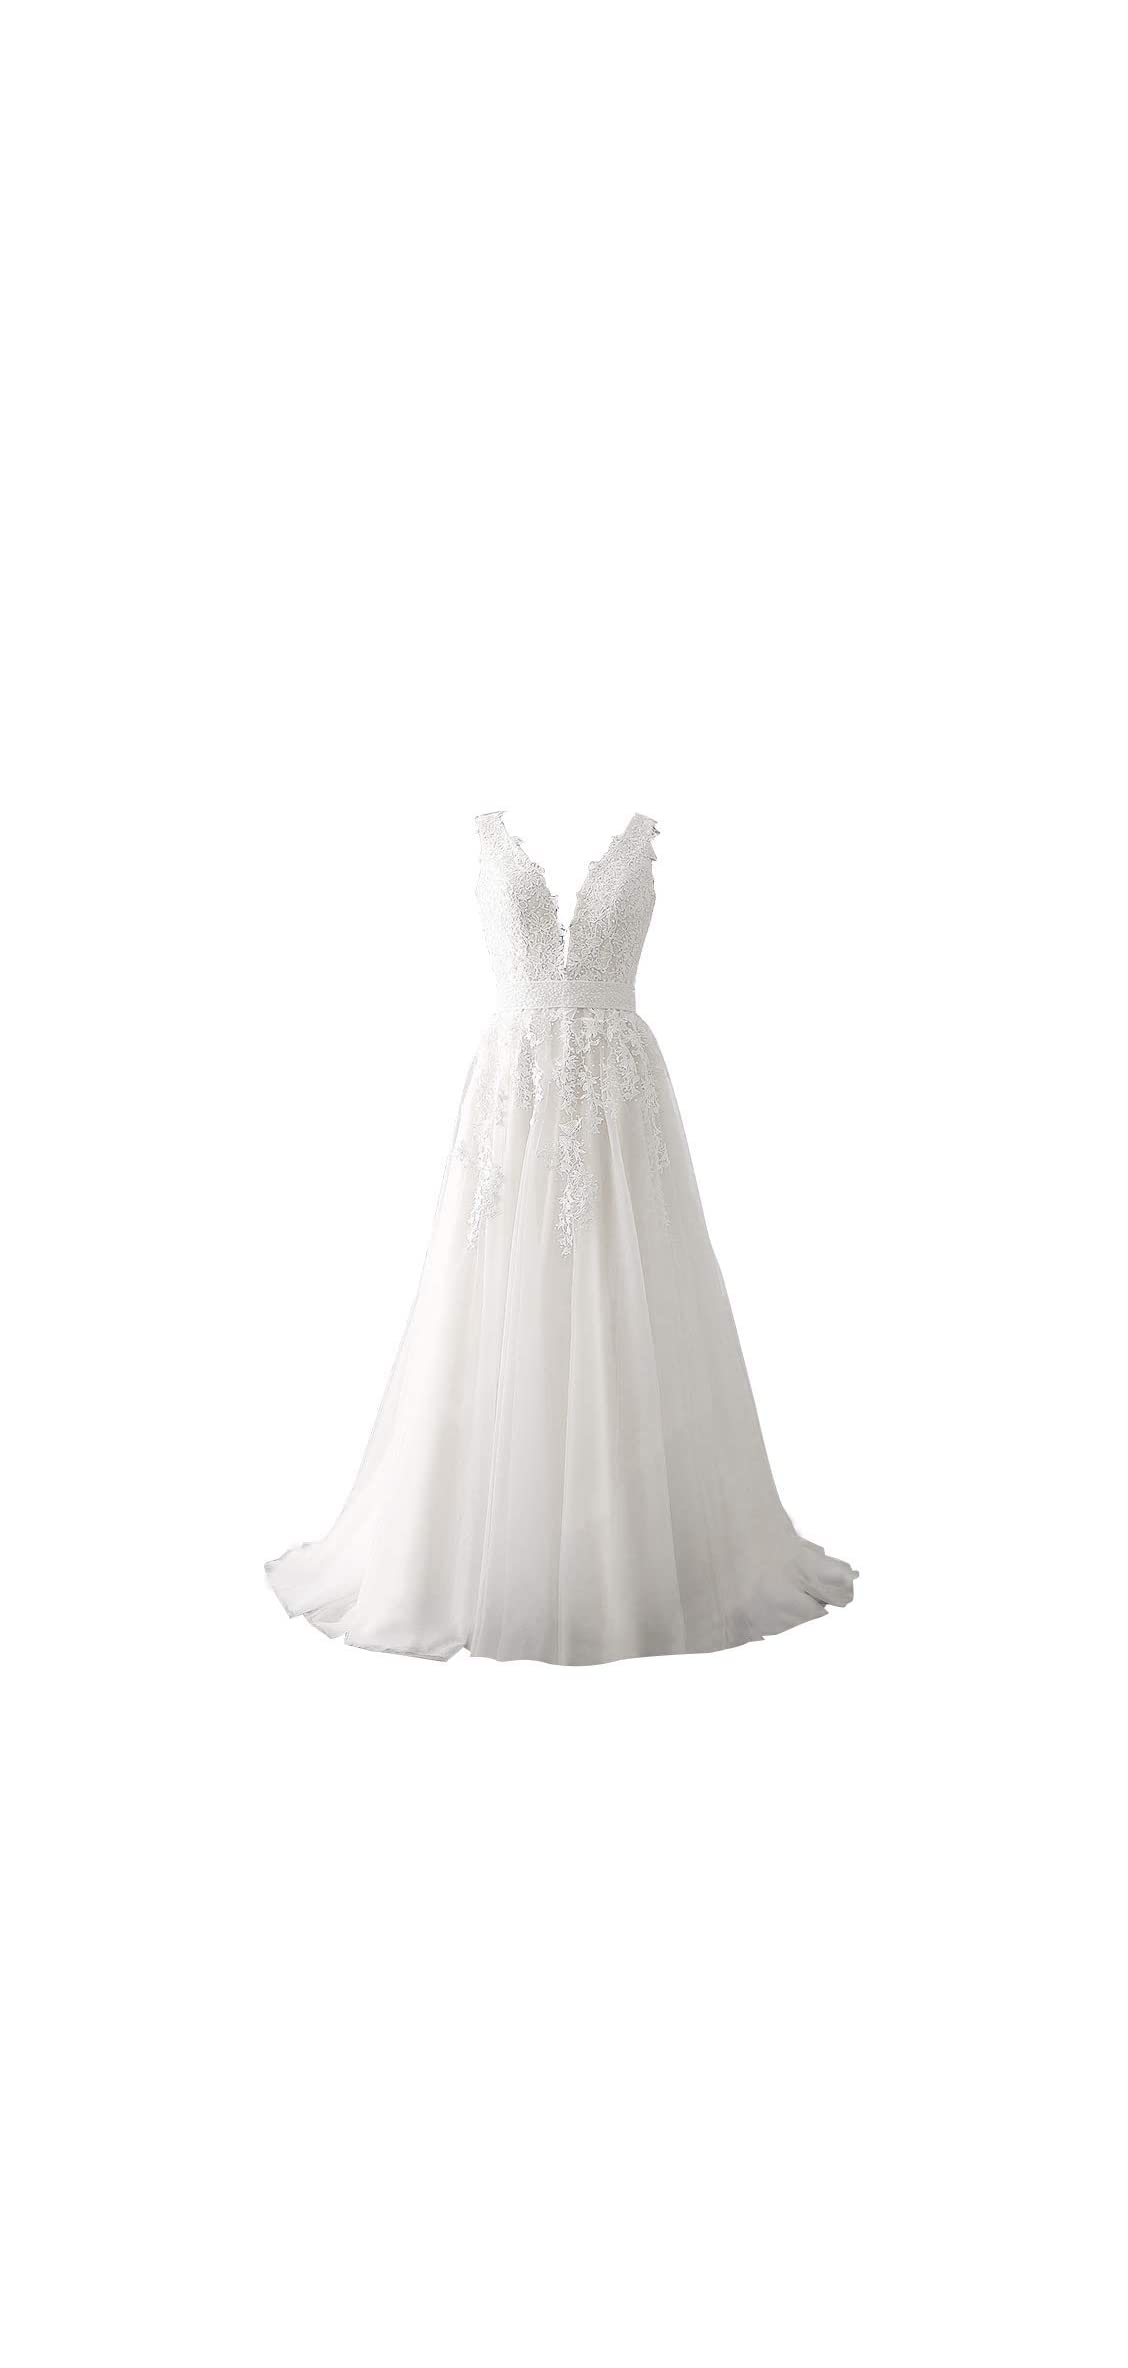 Women's Wedding Dress For Bride Lace Applique Dress